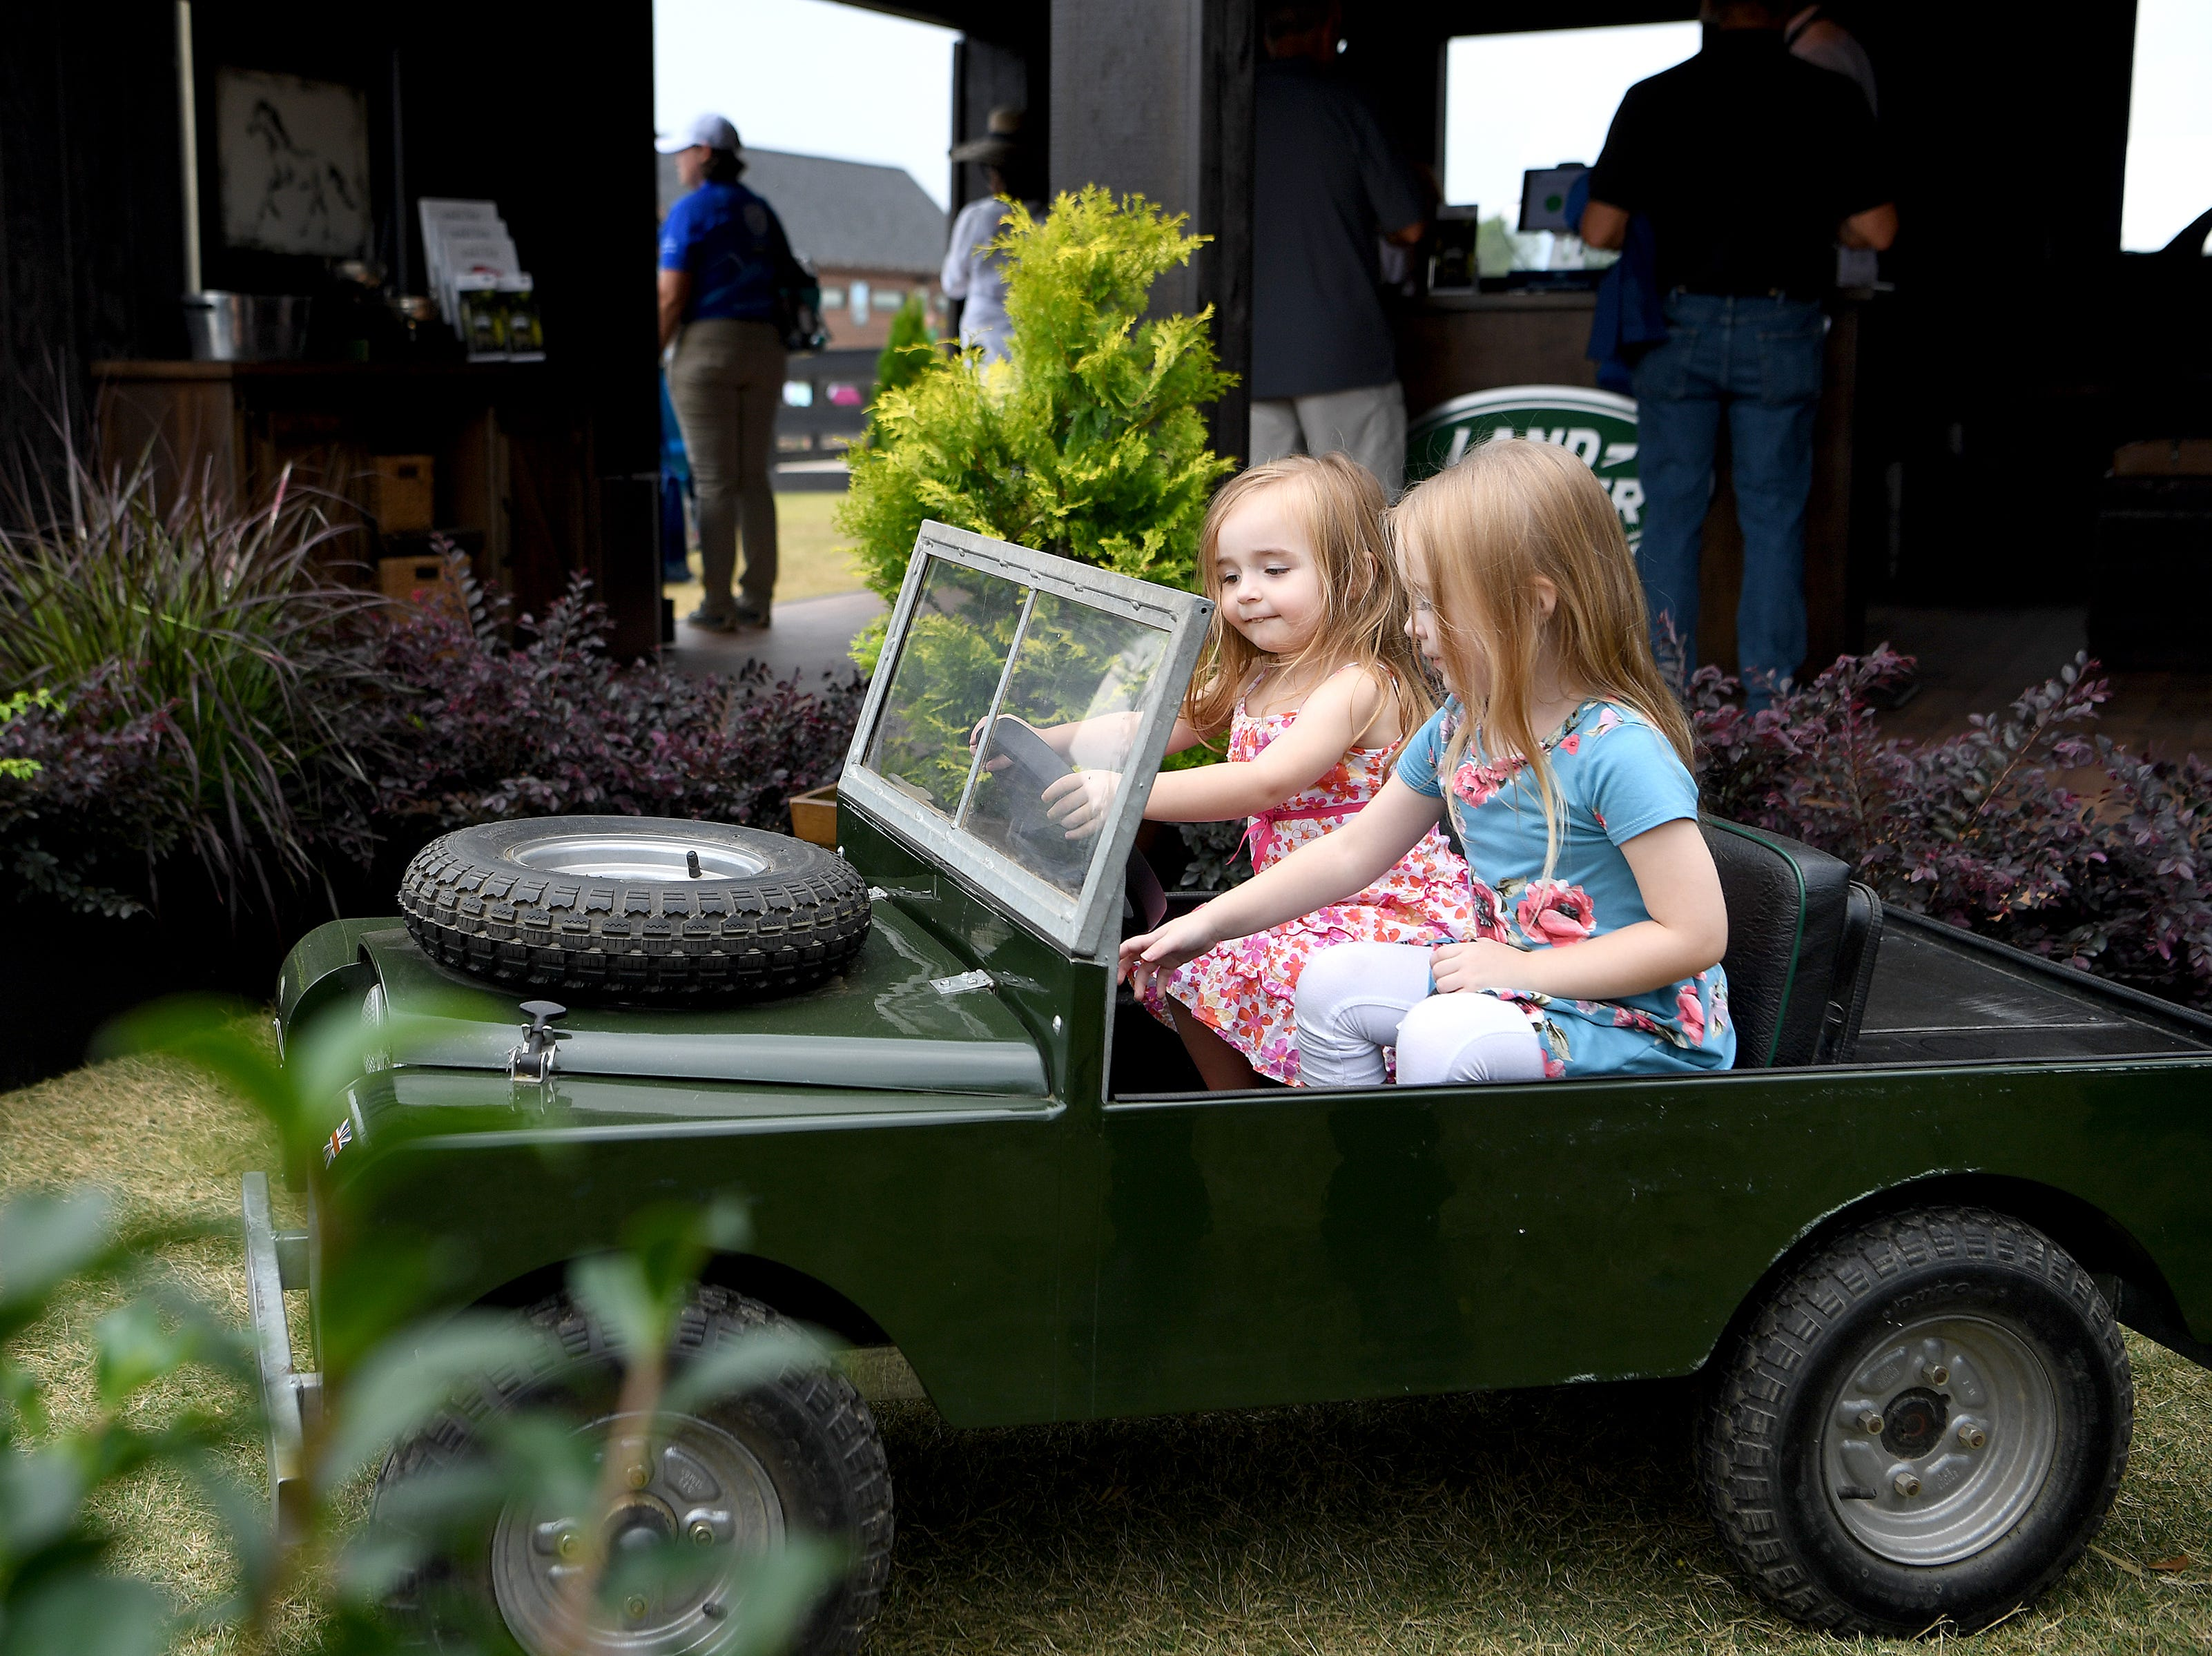 Lucy Tate, 2, and her sister, Daily, 3, of Mills Spring, try out a Land Rover that is just their size before the start of the opening ceremonies of the FEI World Equestrian Games at the Tryon International Equestrian Center on Sept. 11, 2018.